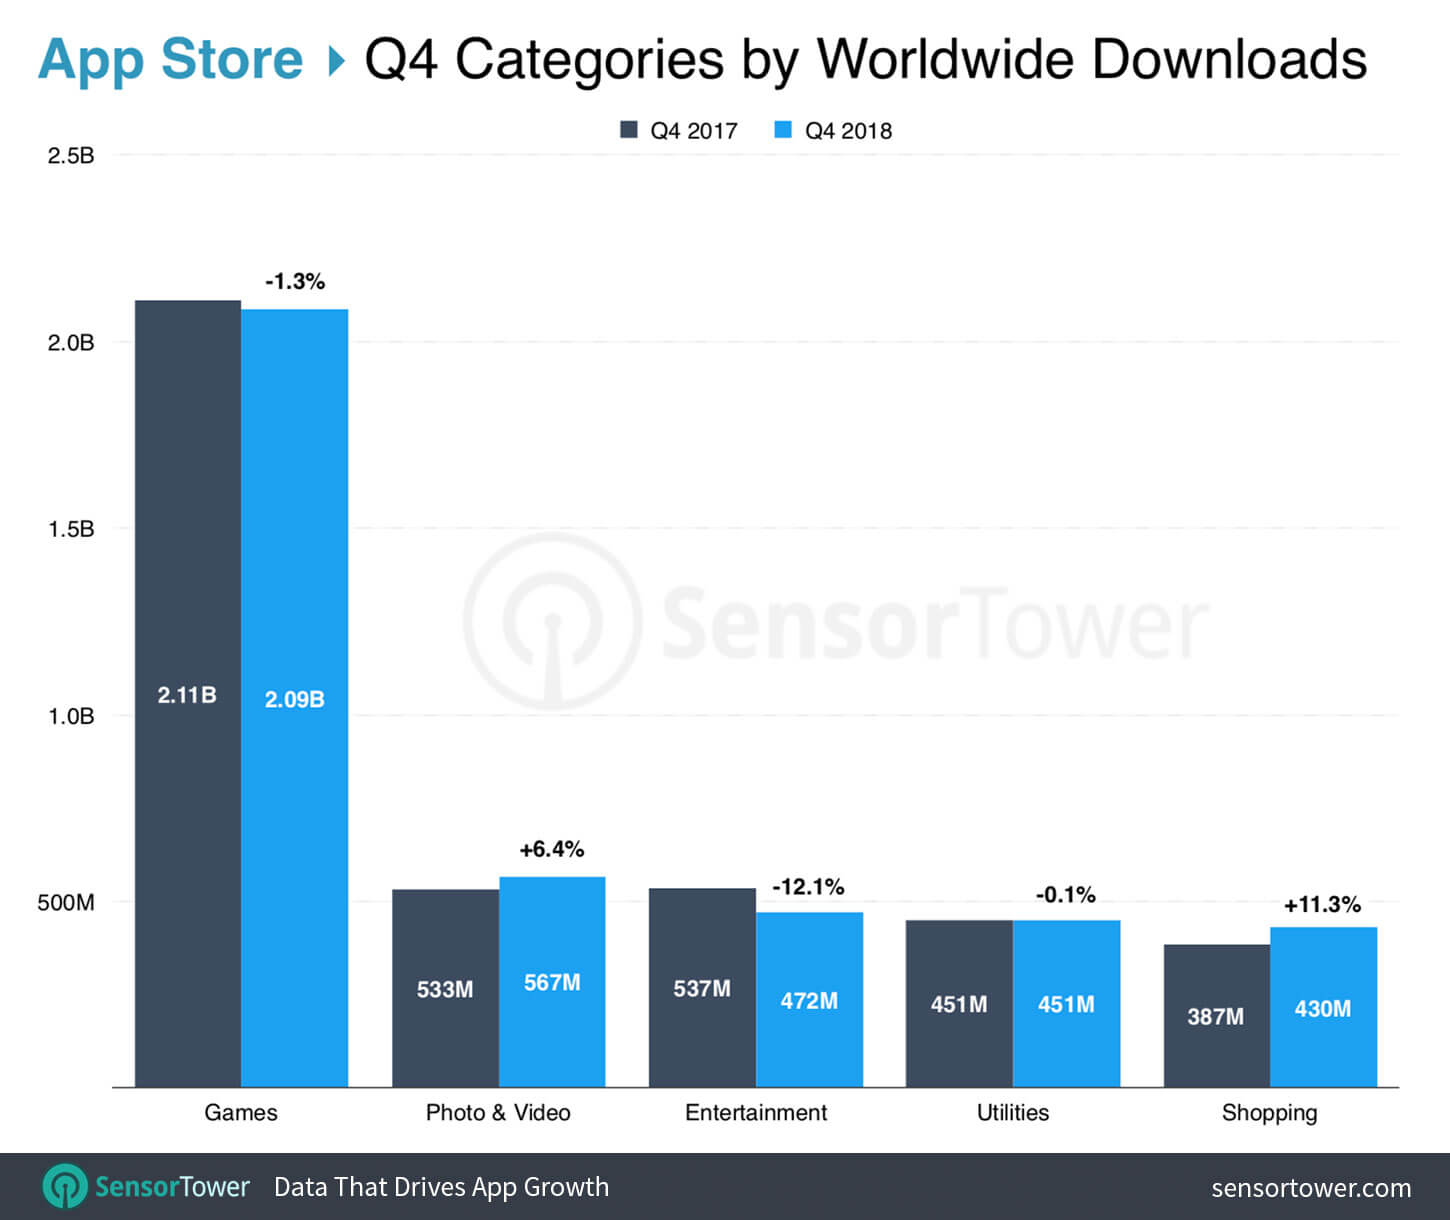 top-categories-ww-app-store-q4-2018